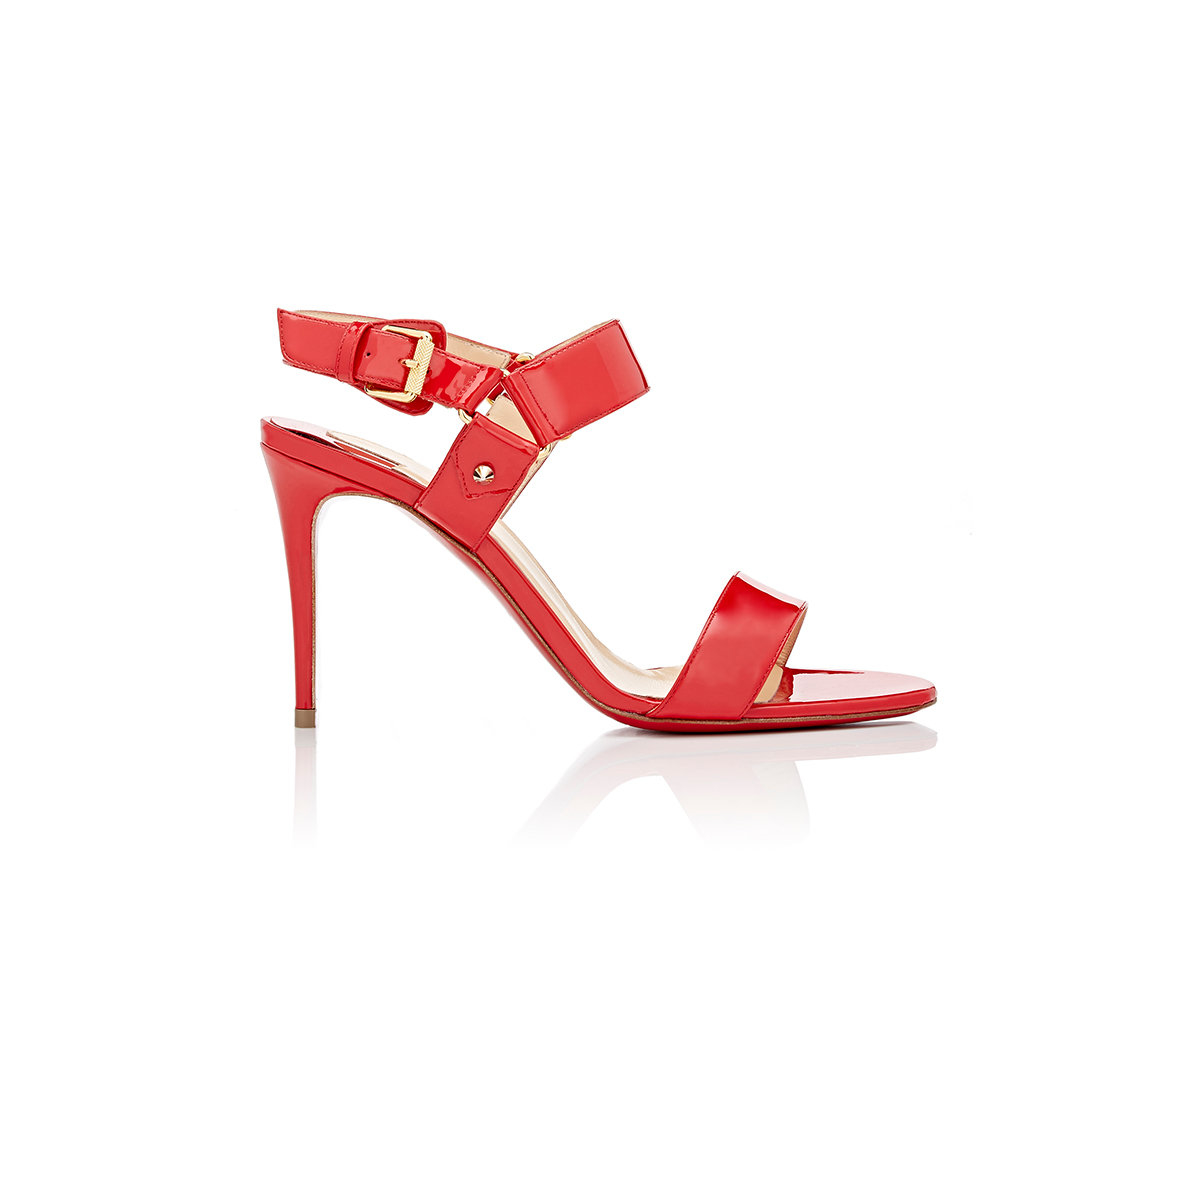 0d512dfdf72d Christian Louboutin Sova Buckled Patent Leather Sandals in Red - Lyst